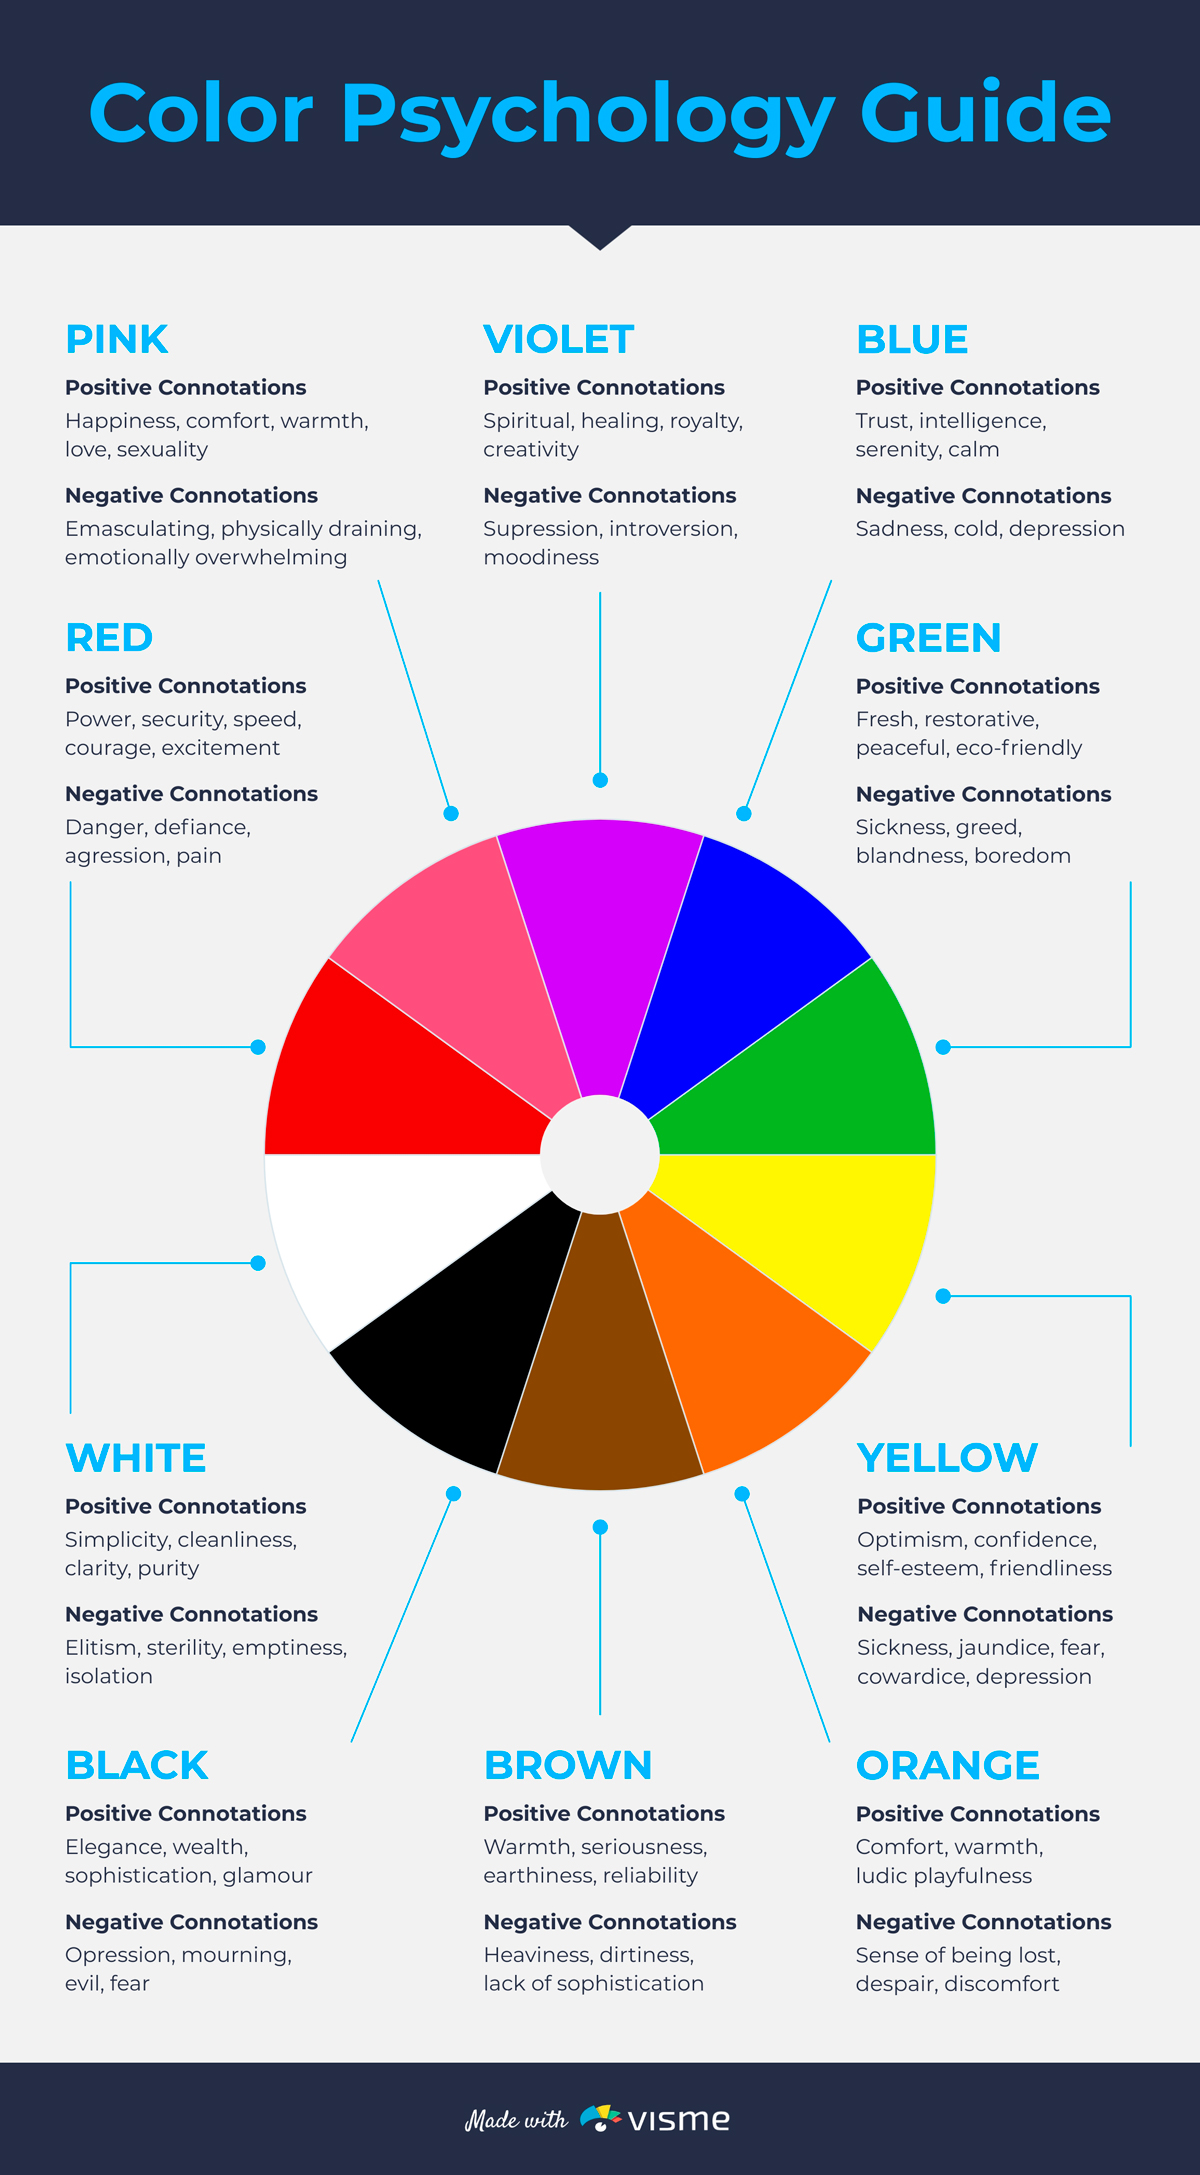 A color psychology guide infographic.